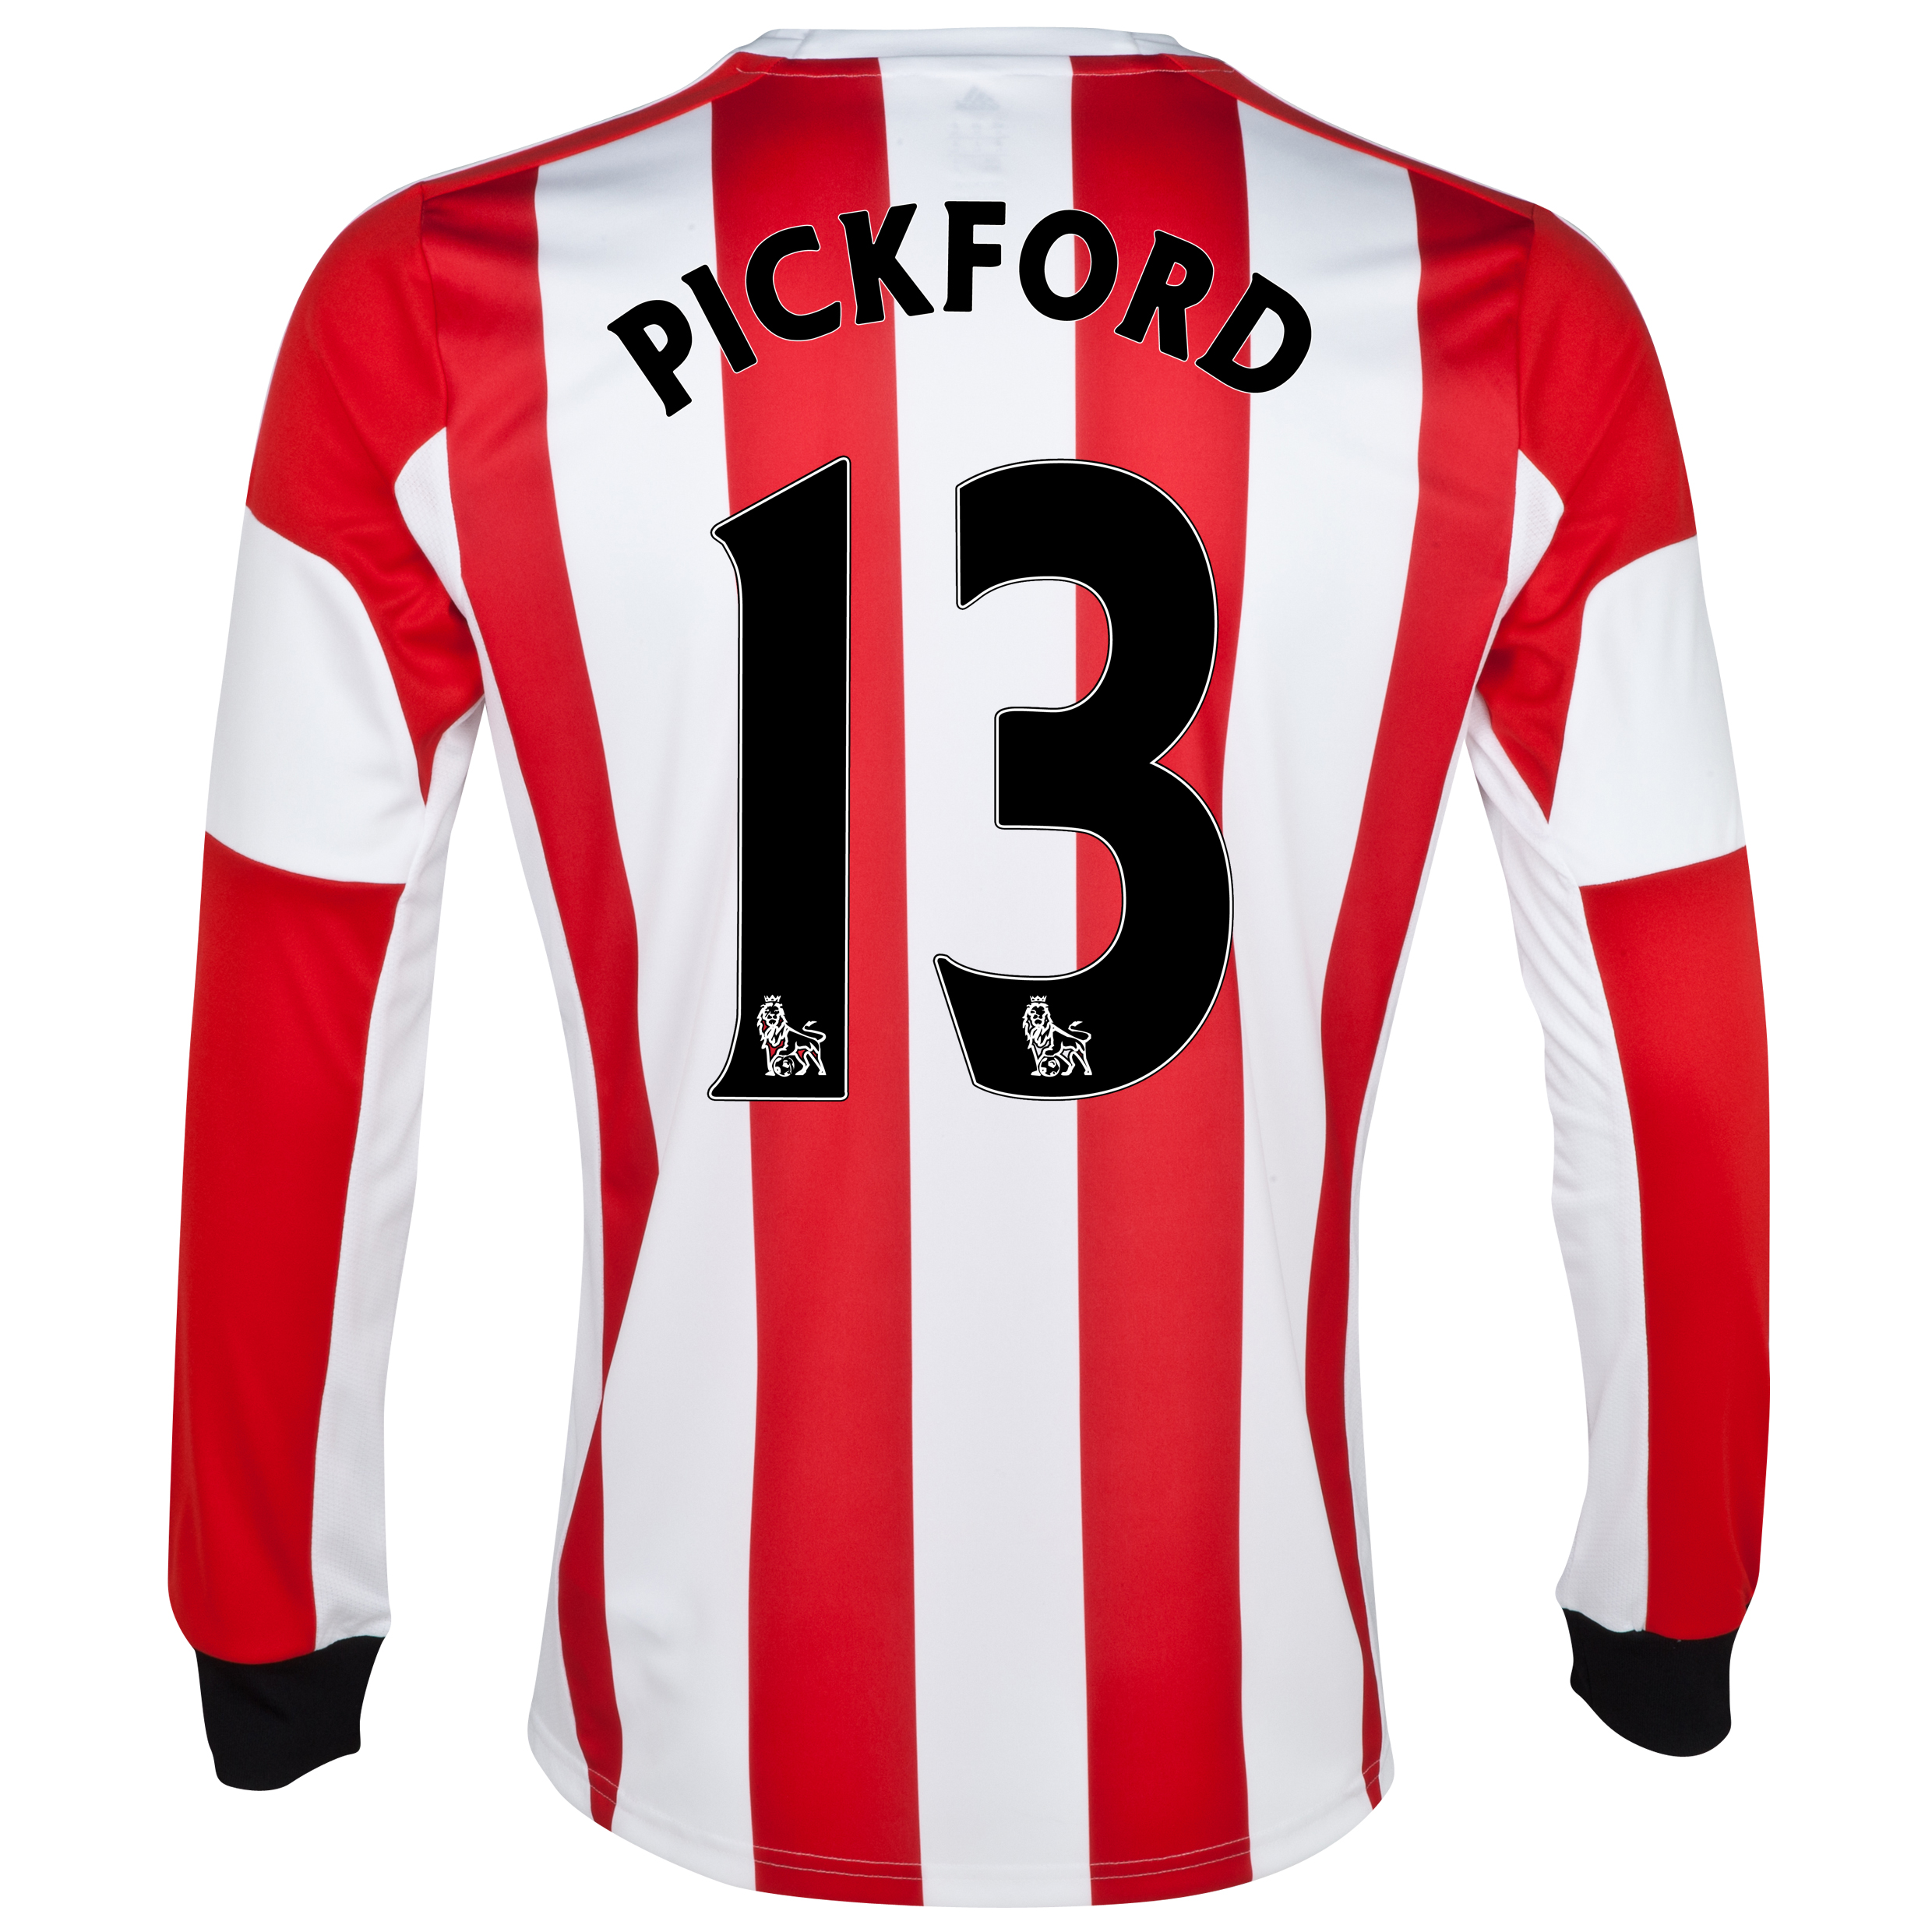 Sunderland Home Shirt 2013/14 - Long Sleeved - Junior with Pickford 13 printing